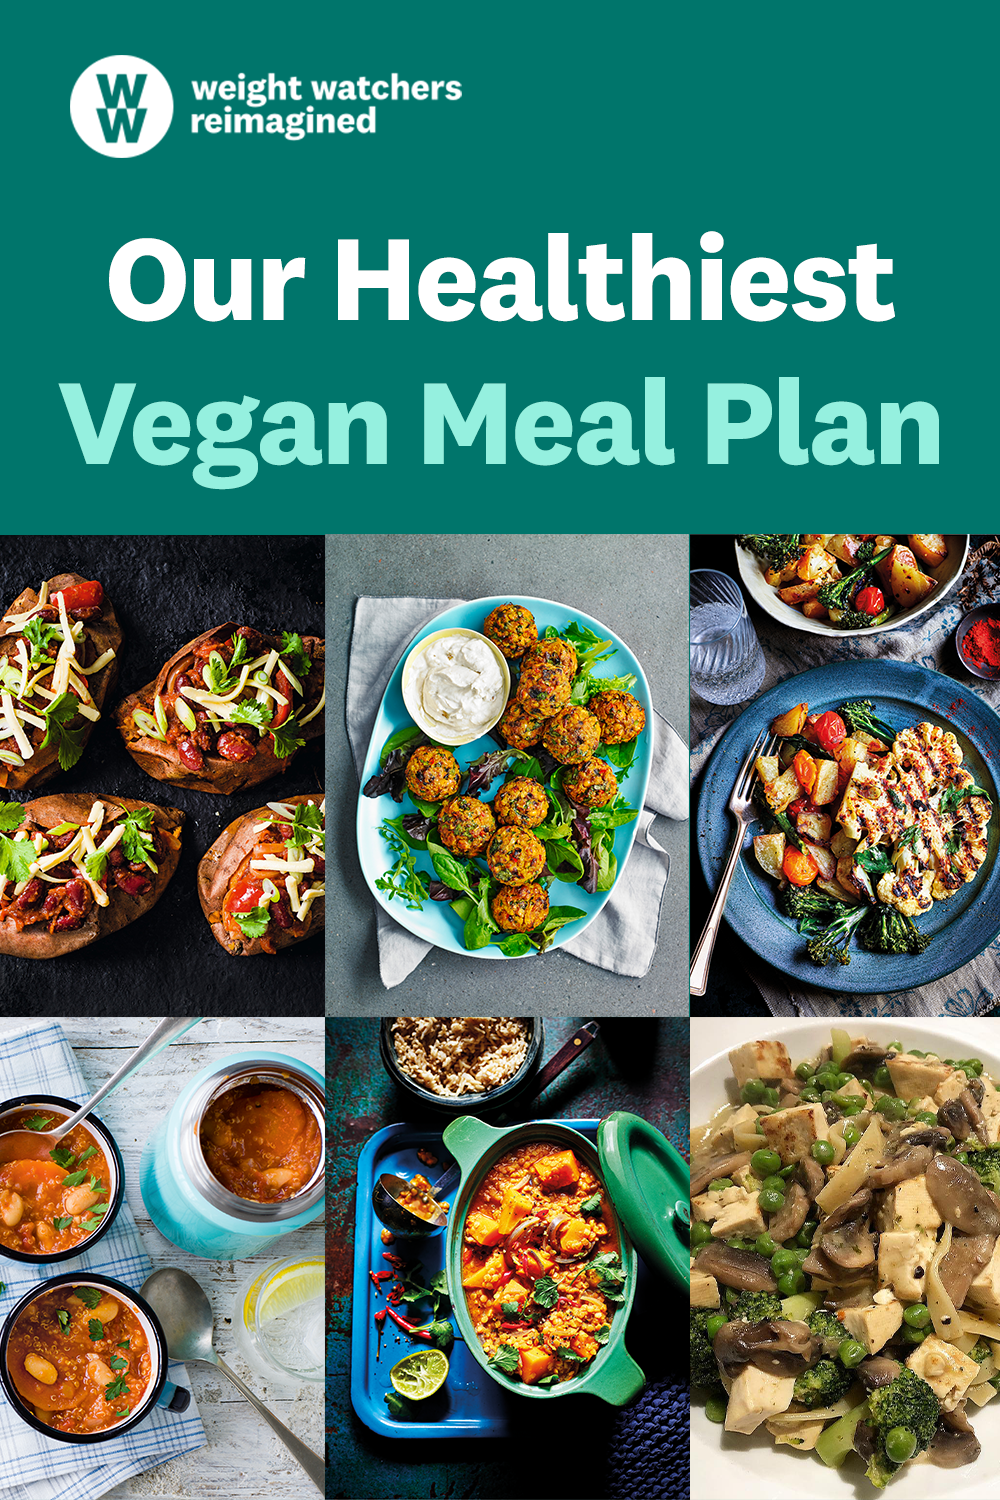 Exclusive 3 Day Meal Plans In 2019 Beautiful Eats Vegan